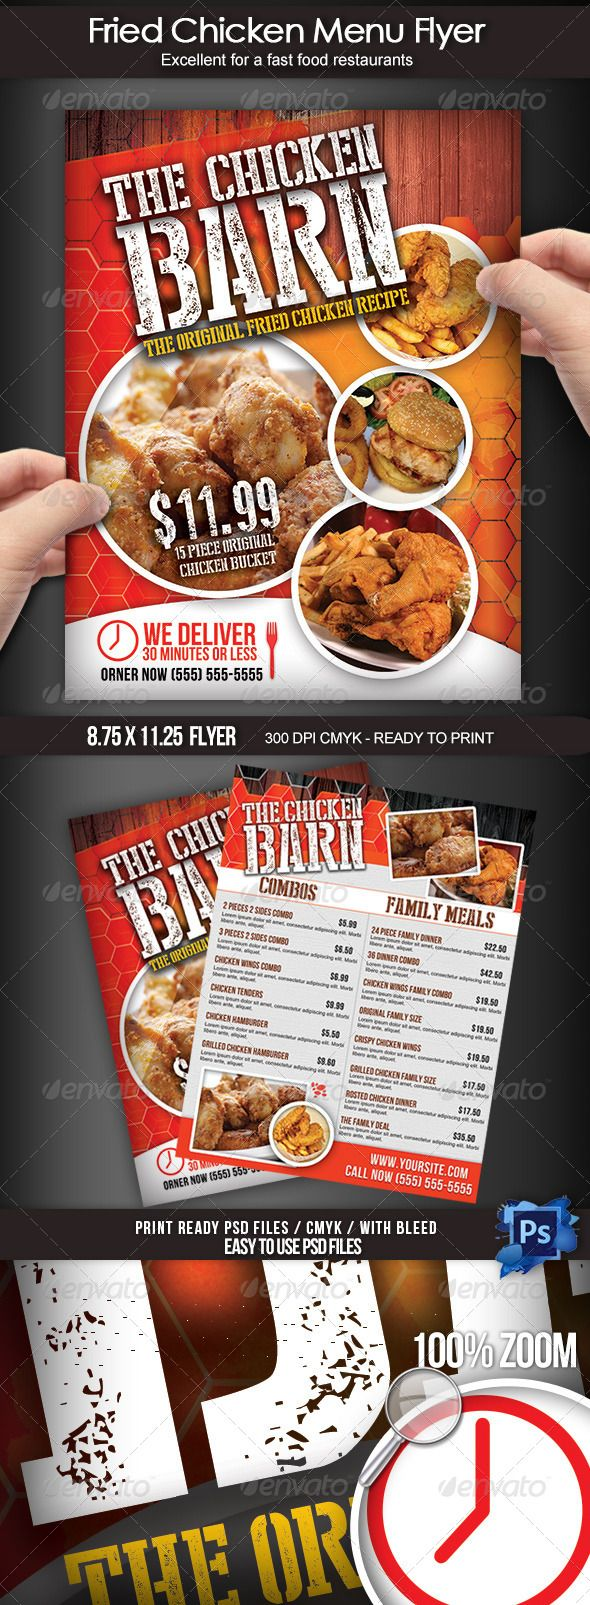 38 best images about food menus graphic art on pinterest for Alaska fish and chicken menu